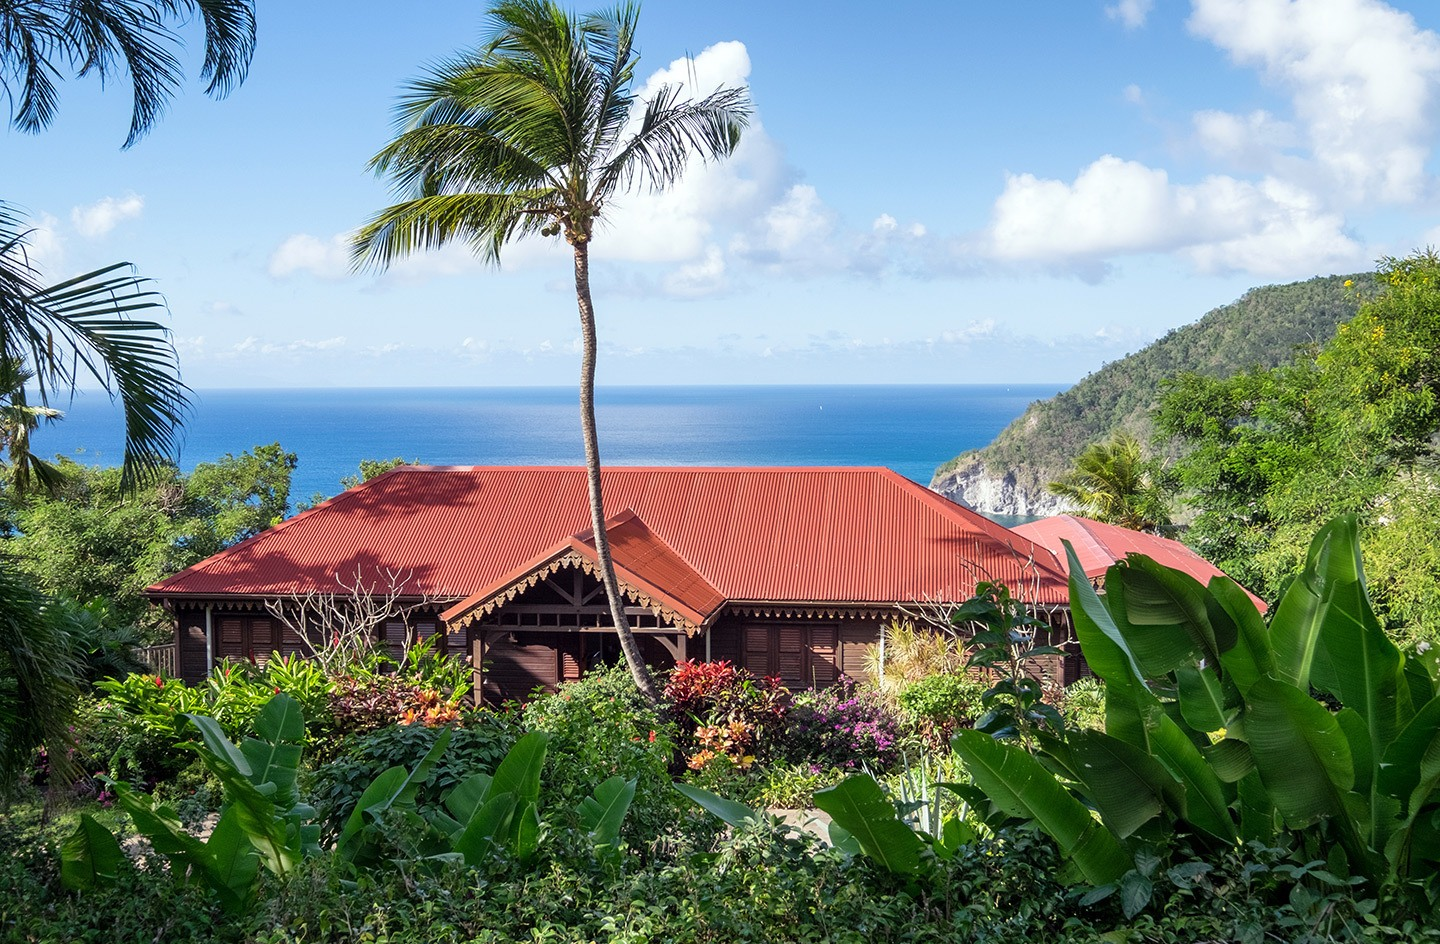 Death in Paradise filming locations in Guadeloupe in the